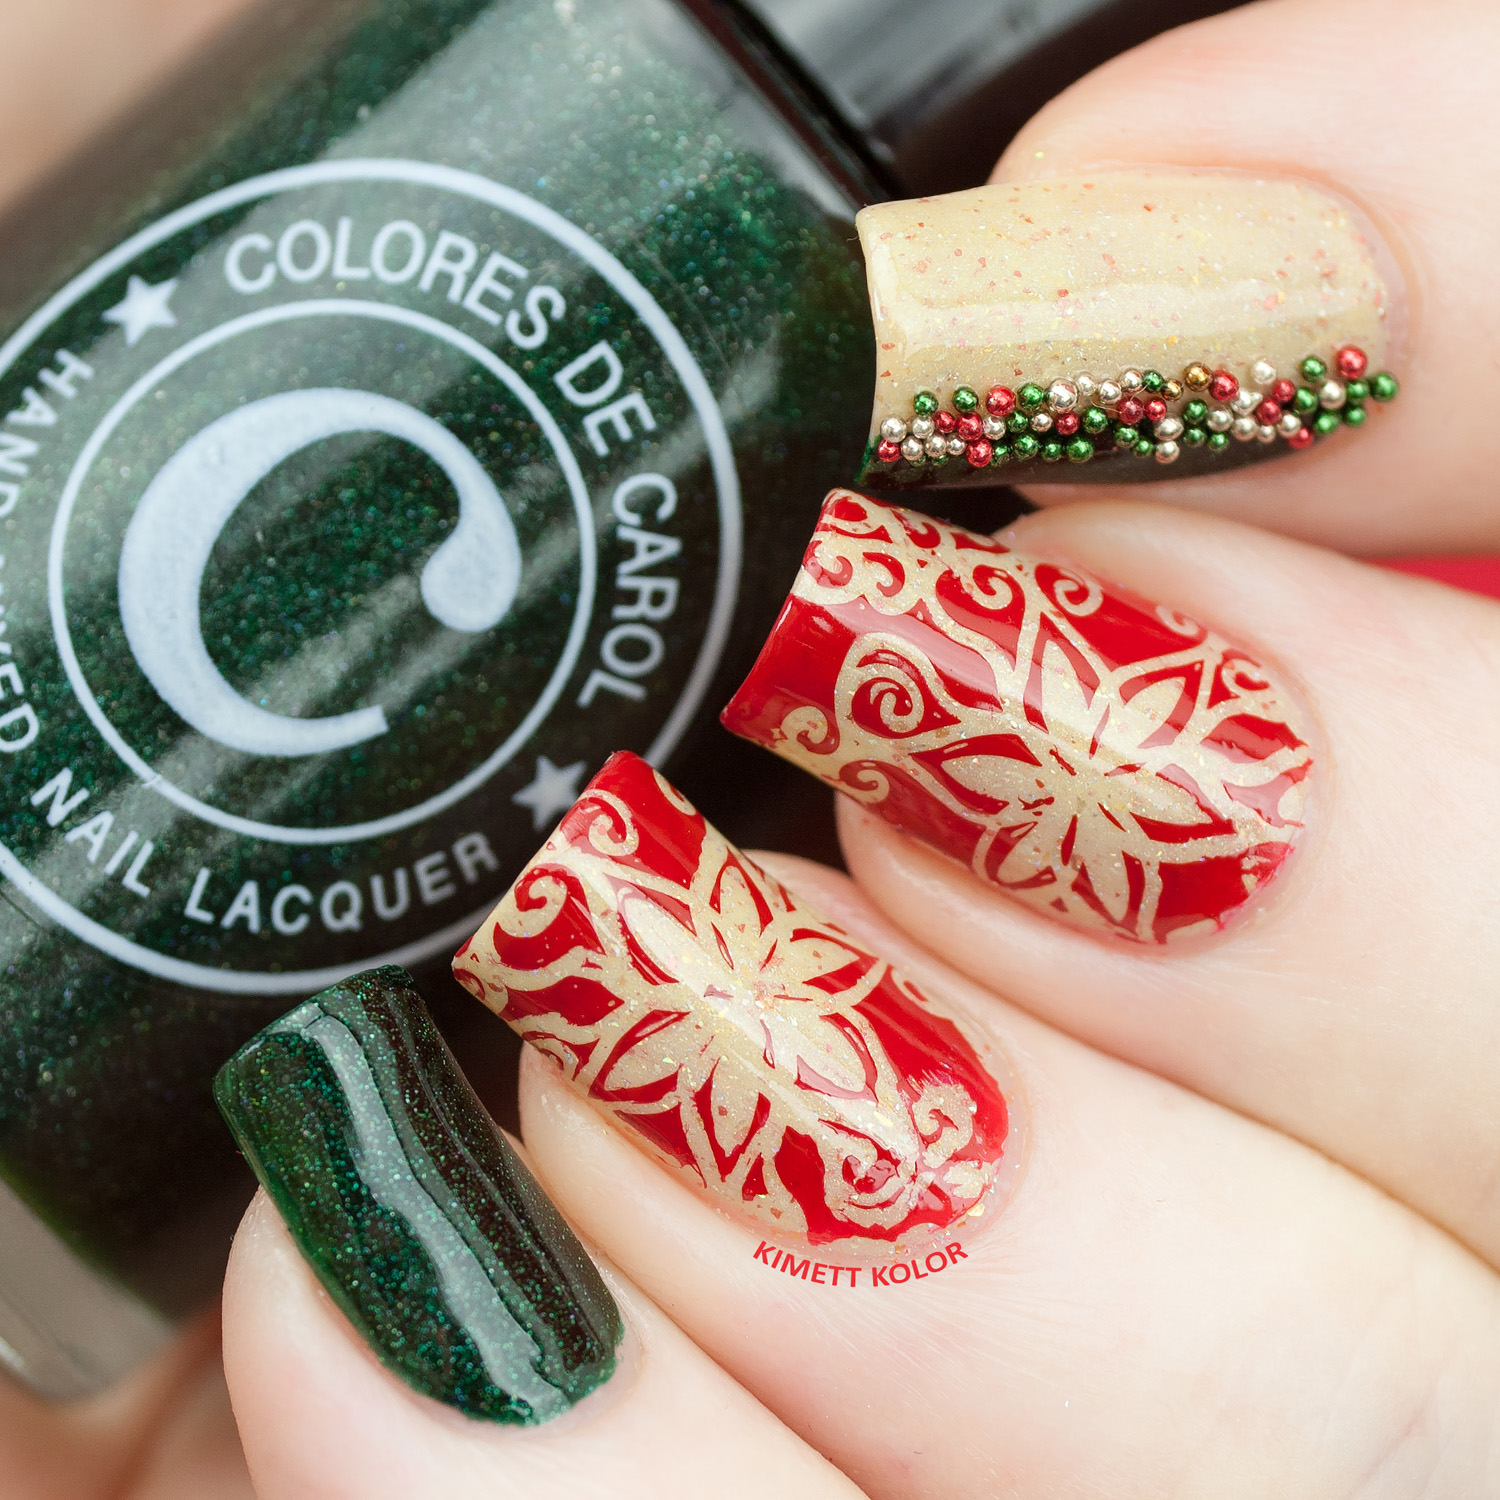 KimettKolor Christmas Flowers on ILNP Spiced Eggnog